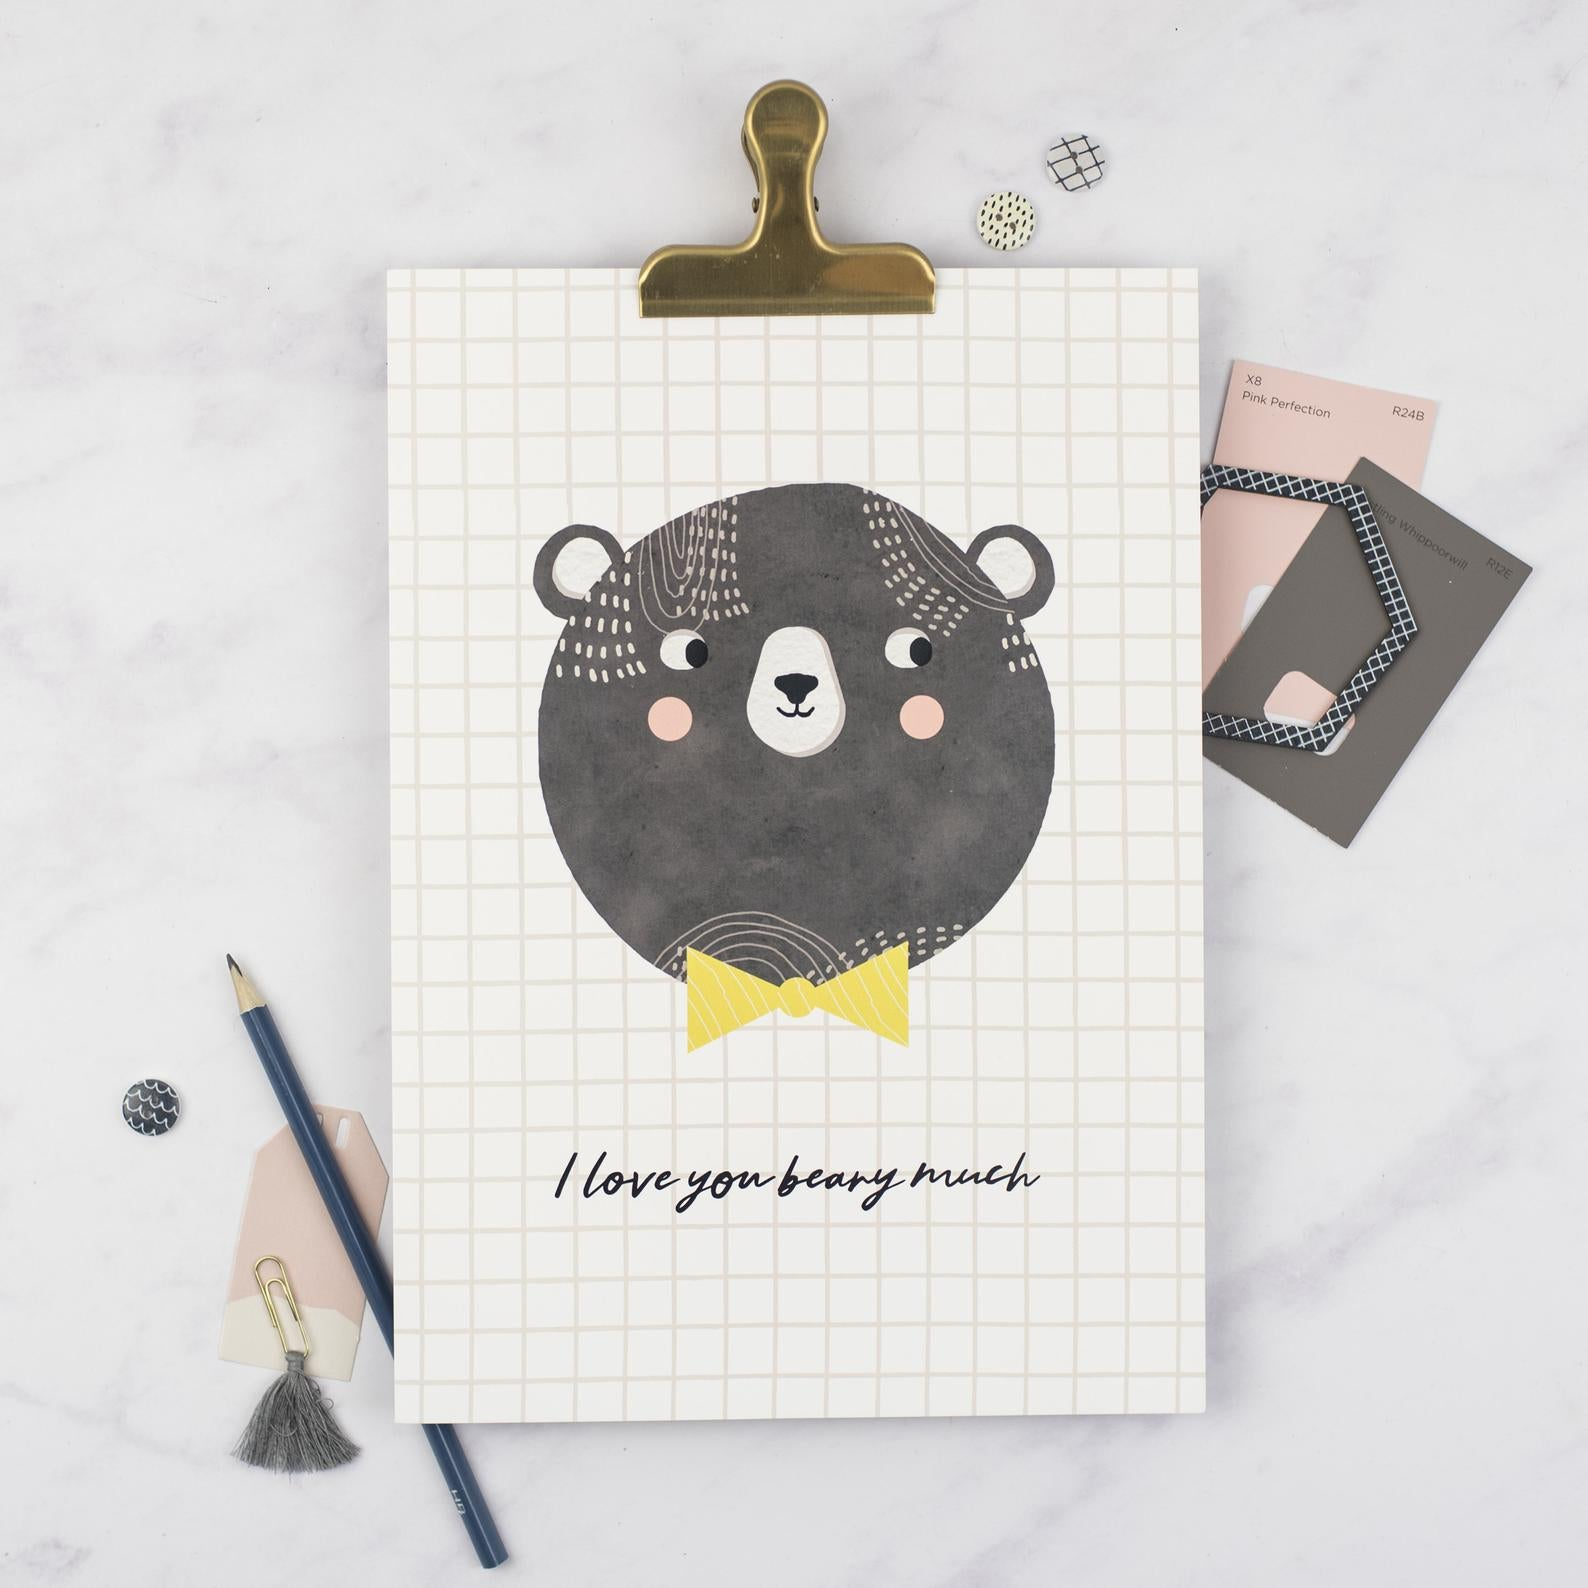 'I love you beary much' Art Print